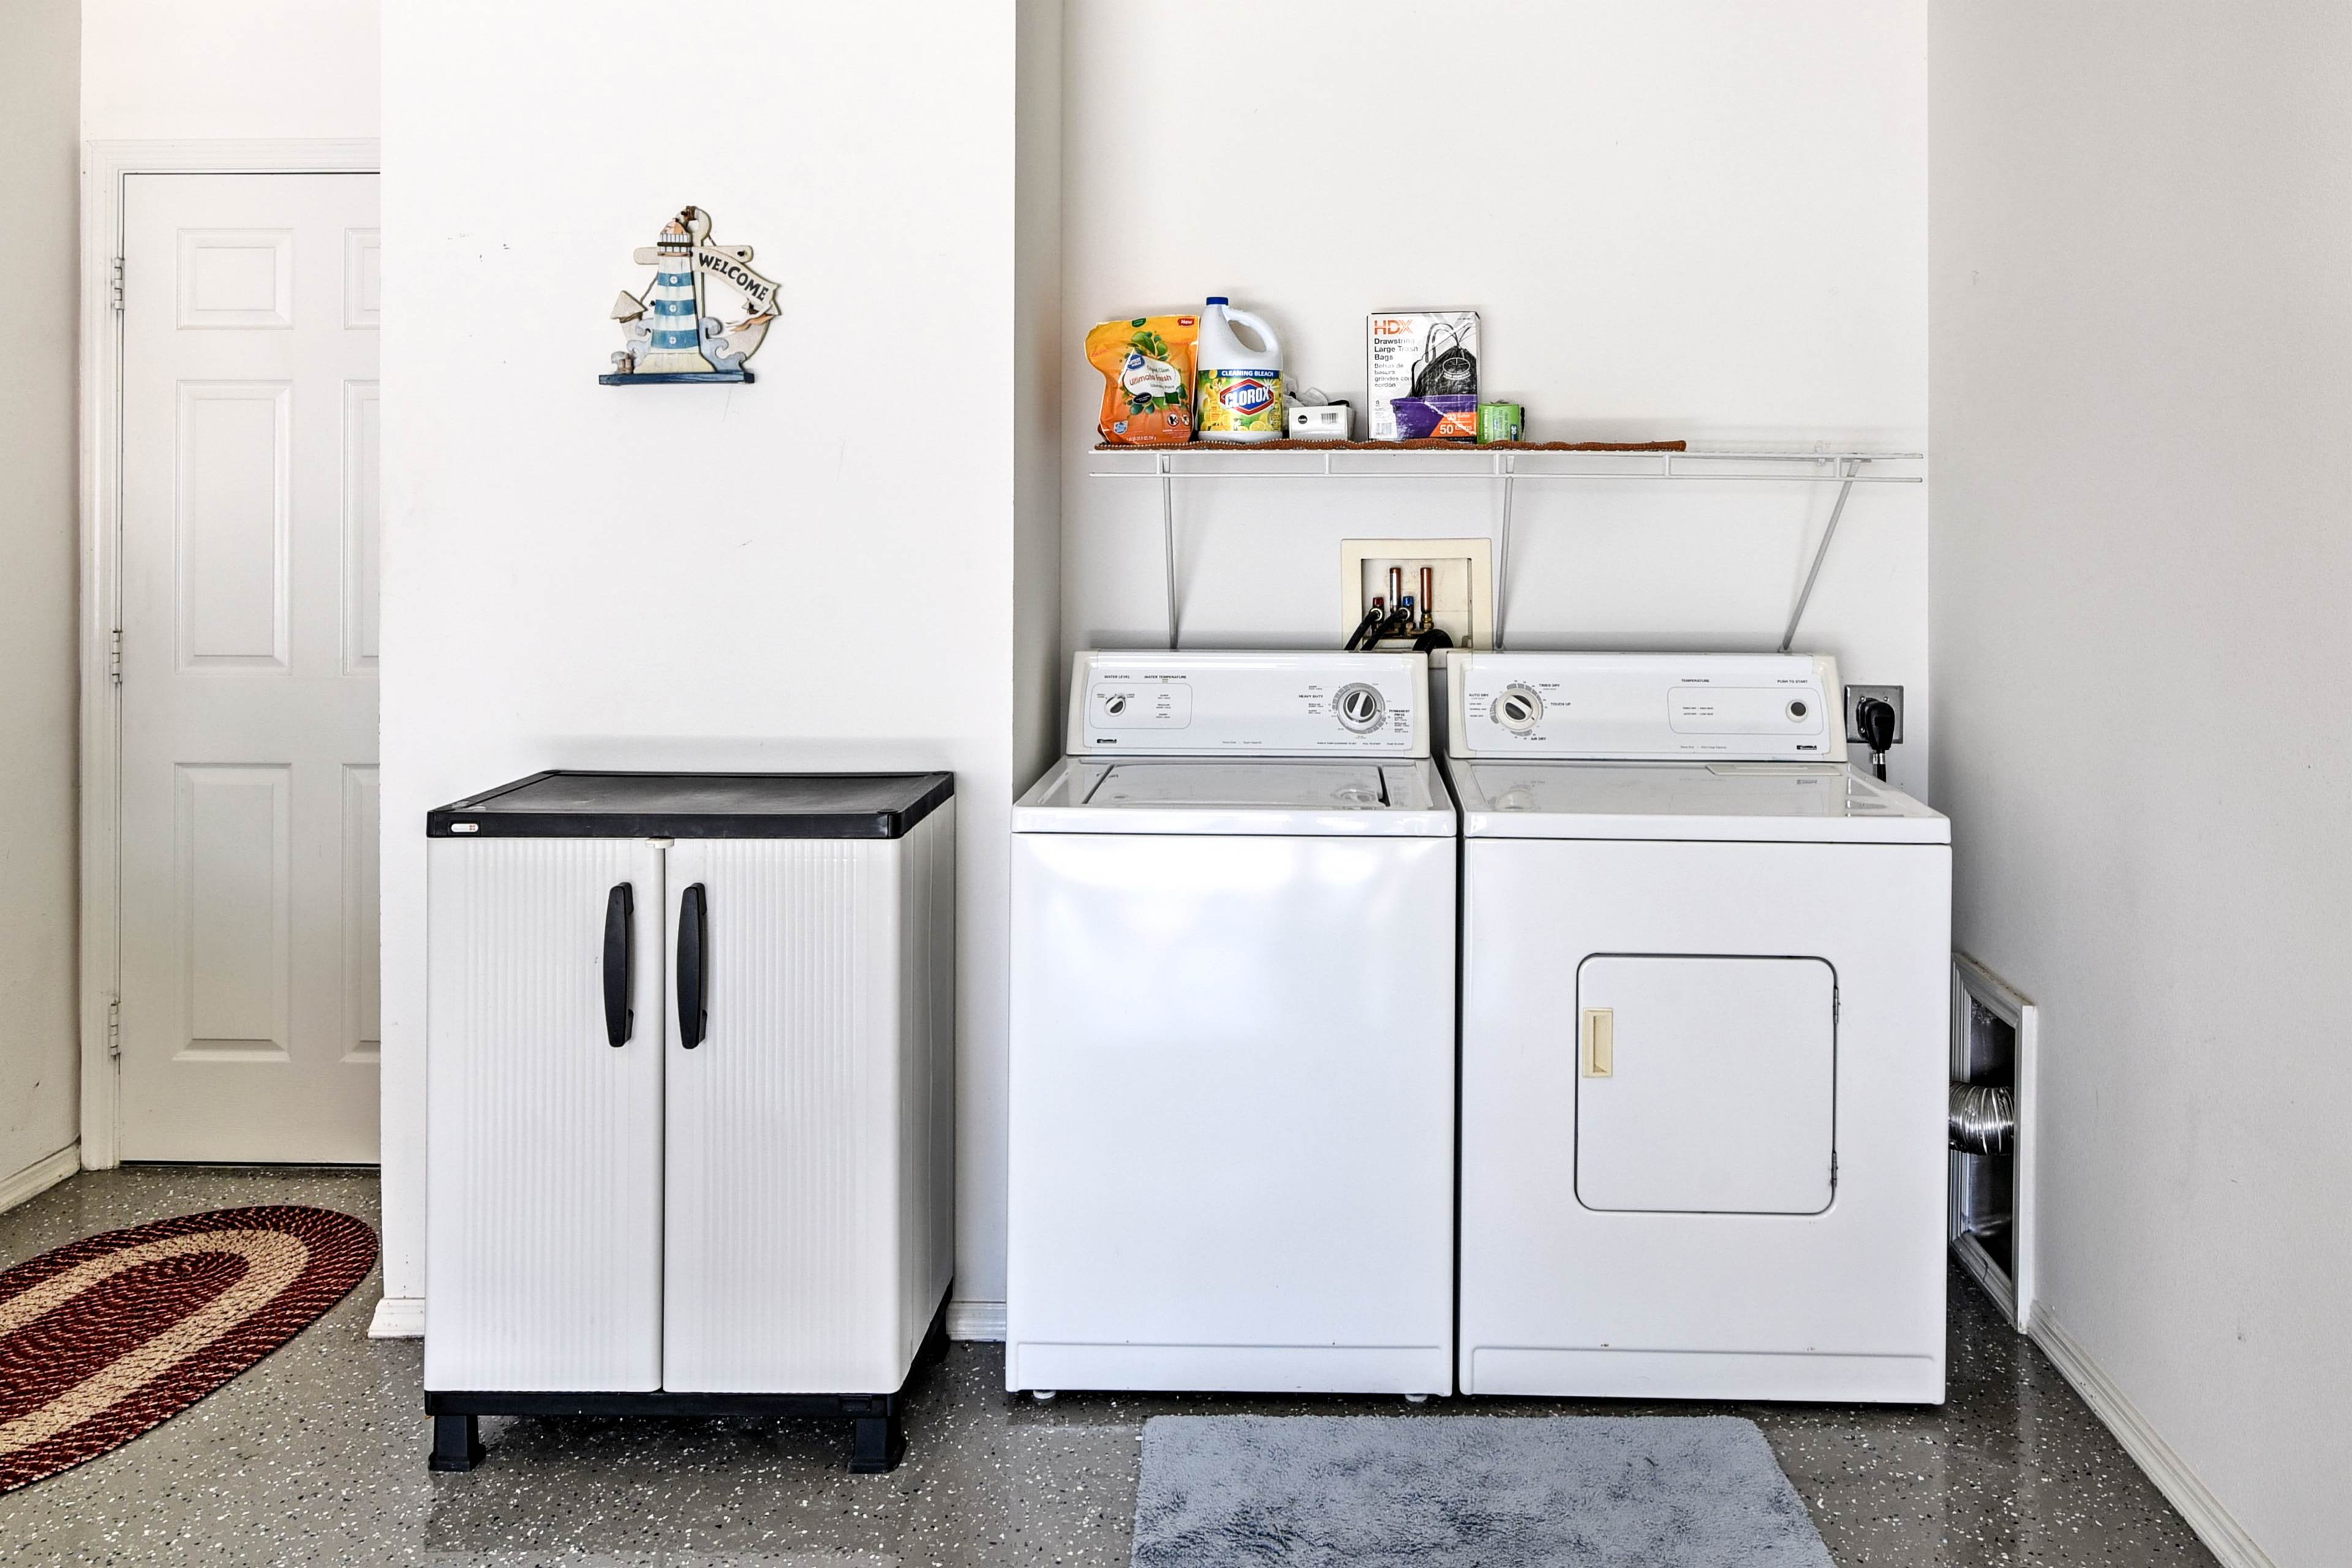 Keep your adventure gear fresh using the in-unit washing machine.